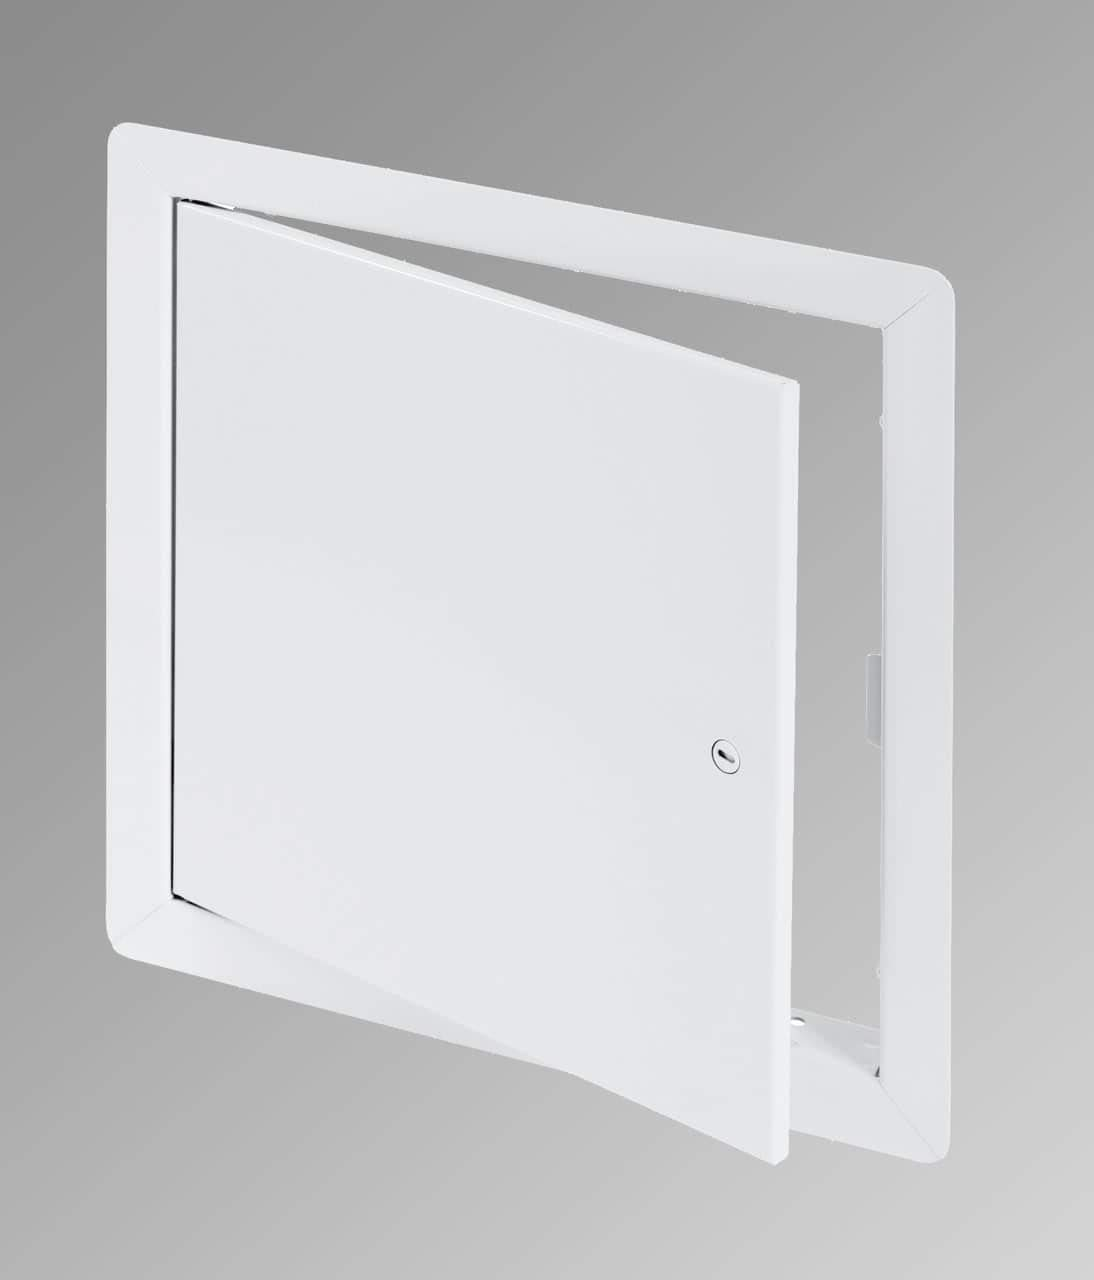 Best - 12'' x 12'' General Purpose Access Door with Flange by Best Access Doors